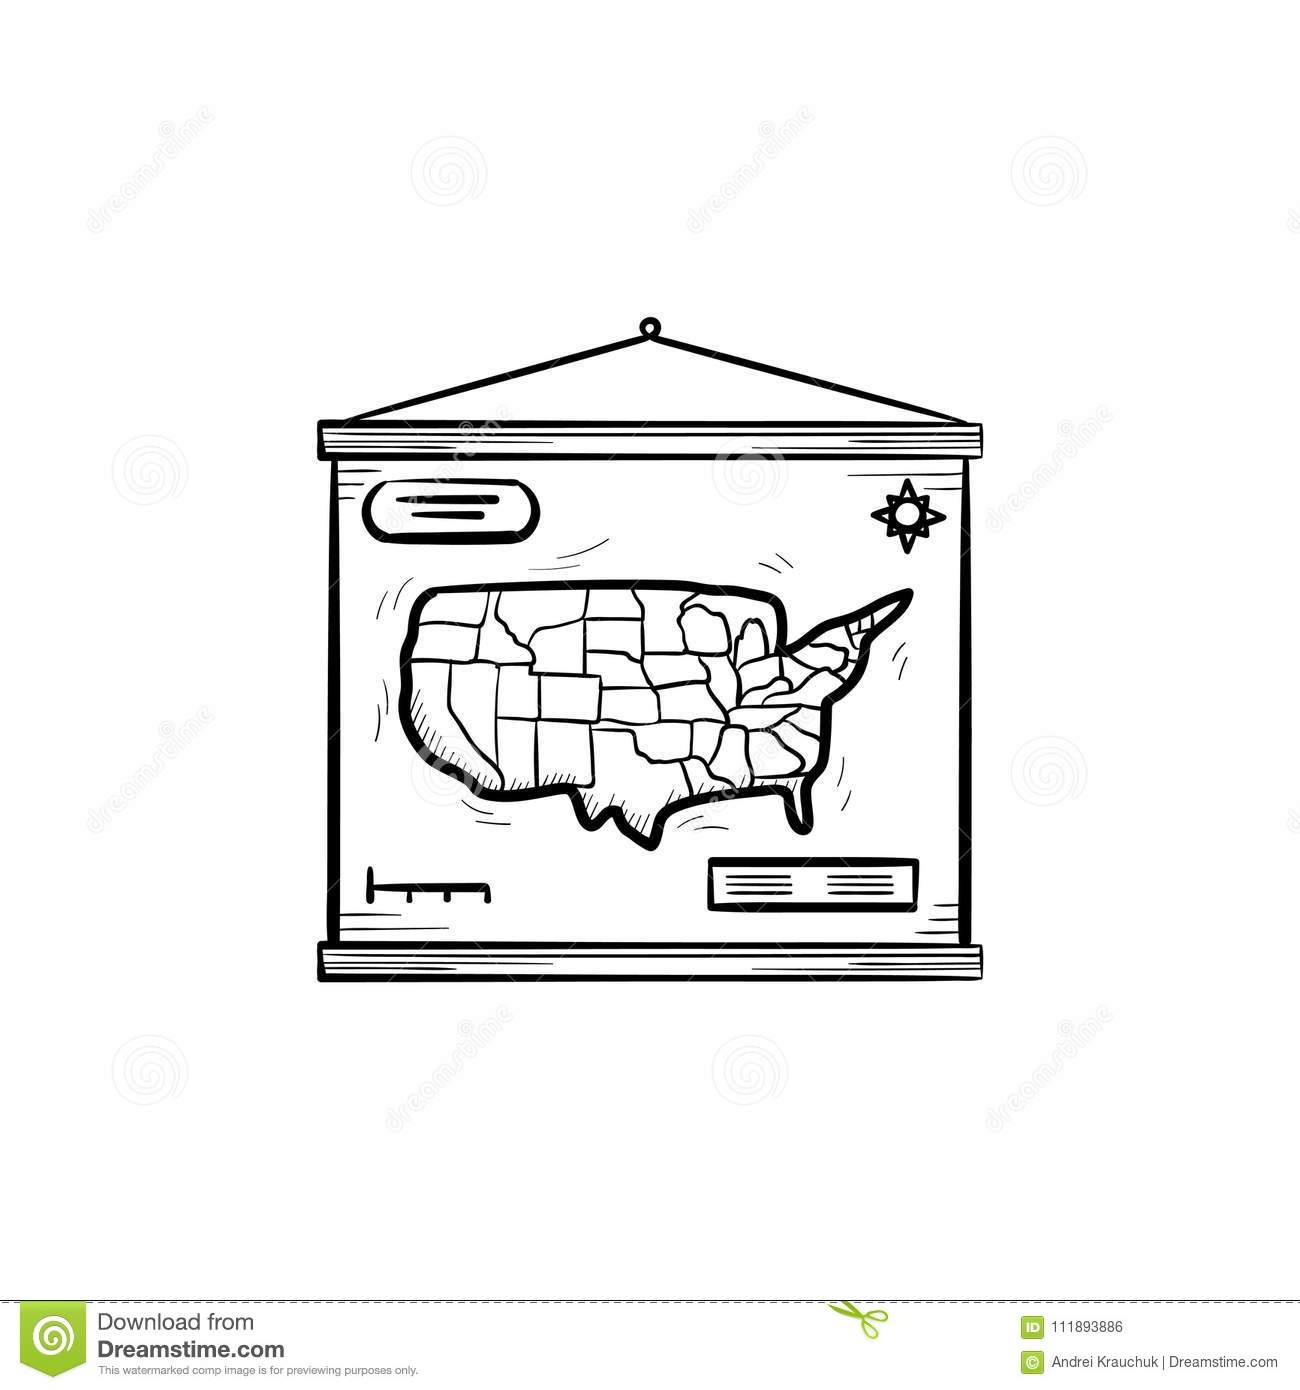 World map hand drawn sketch icon stock vector illustration of world map hand drawn sketch icon gumiabroncs Gallery